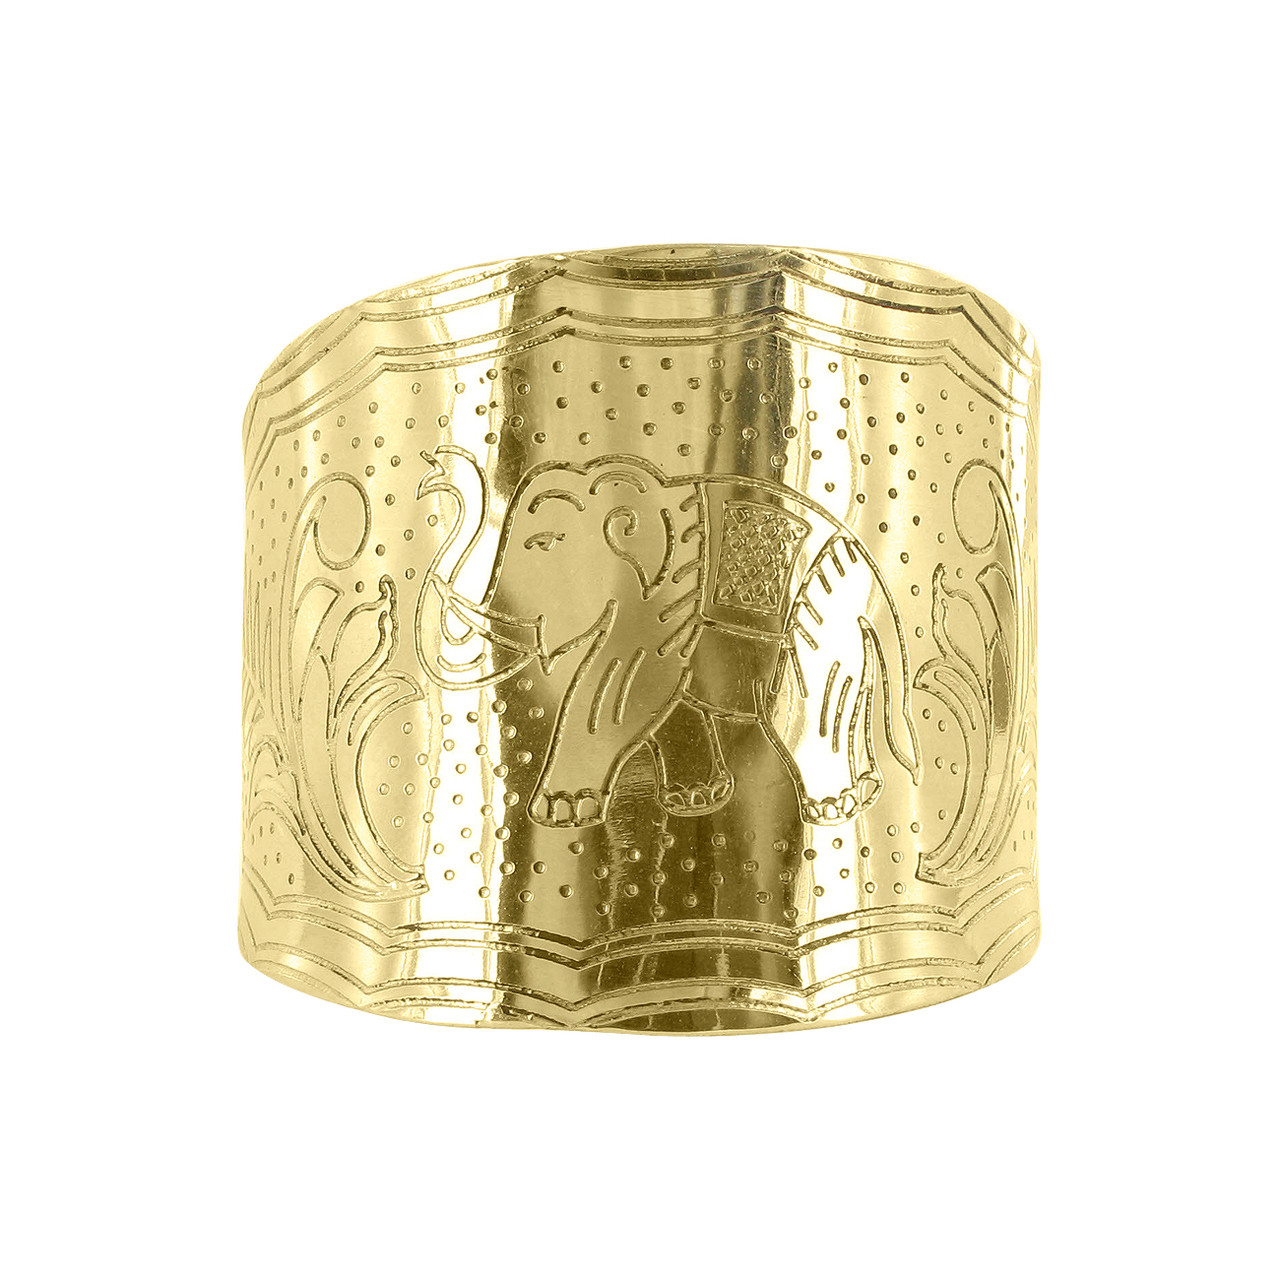 Elephant and Leaves Story telling Cuff Bracelets